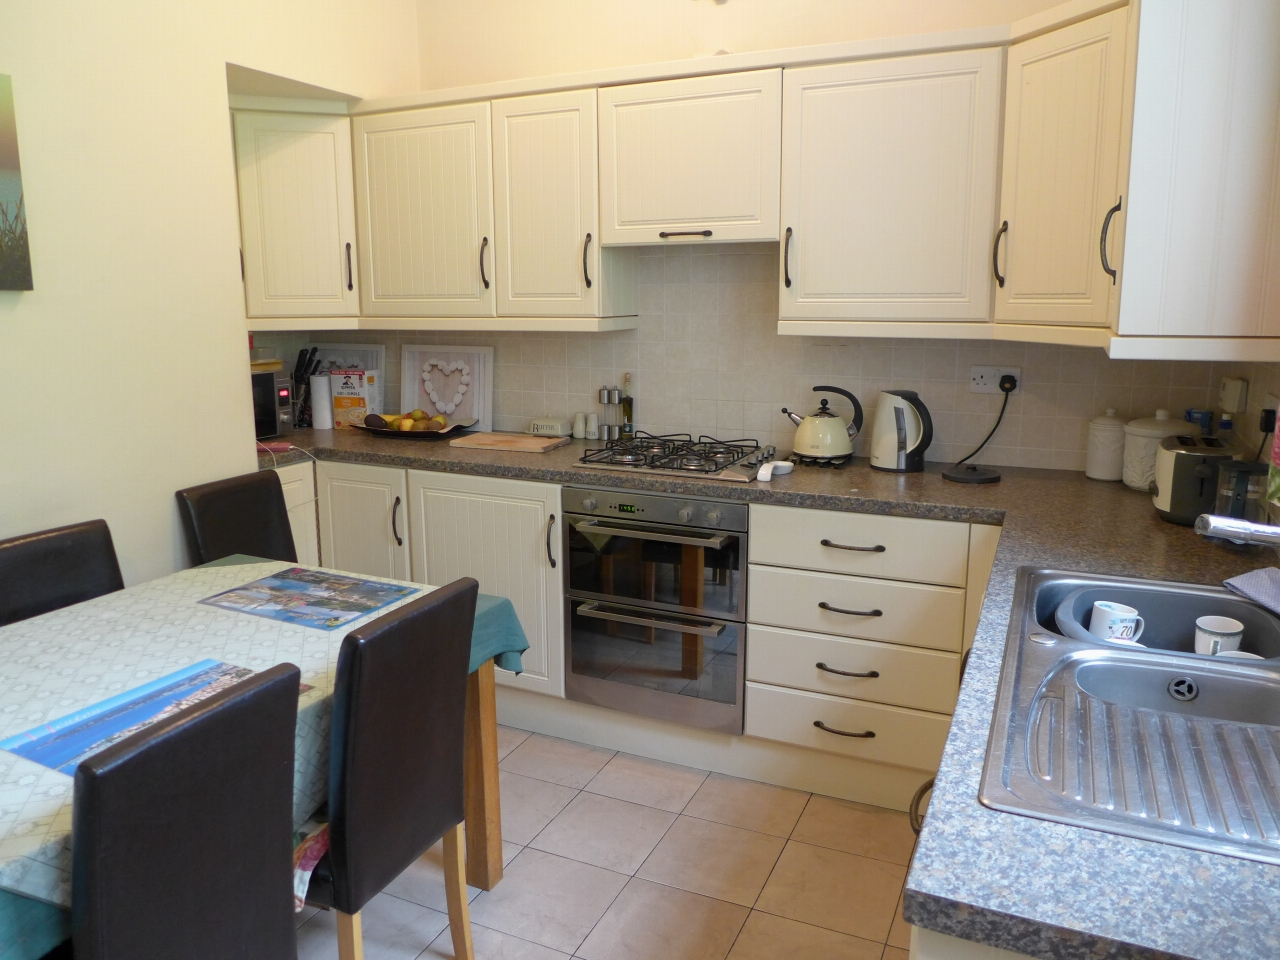 3 bedroom end terraced house For Sale in Calderdale - Photograph 3.